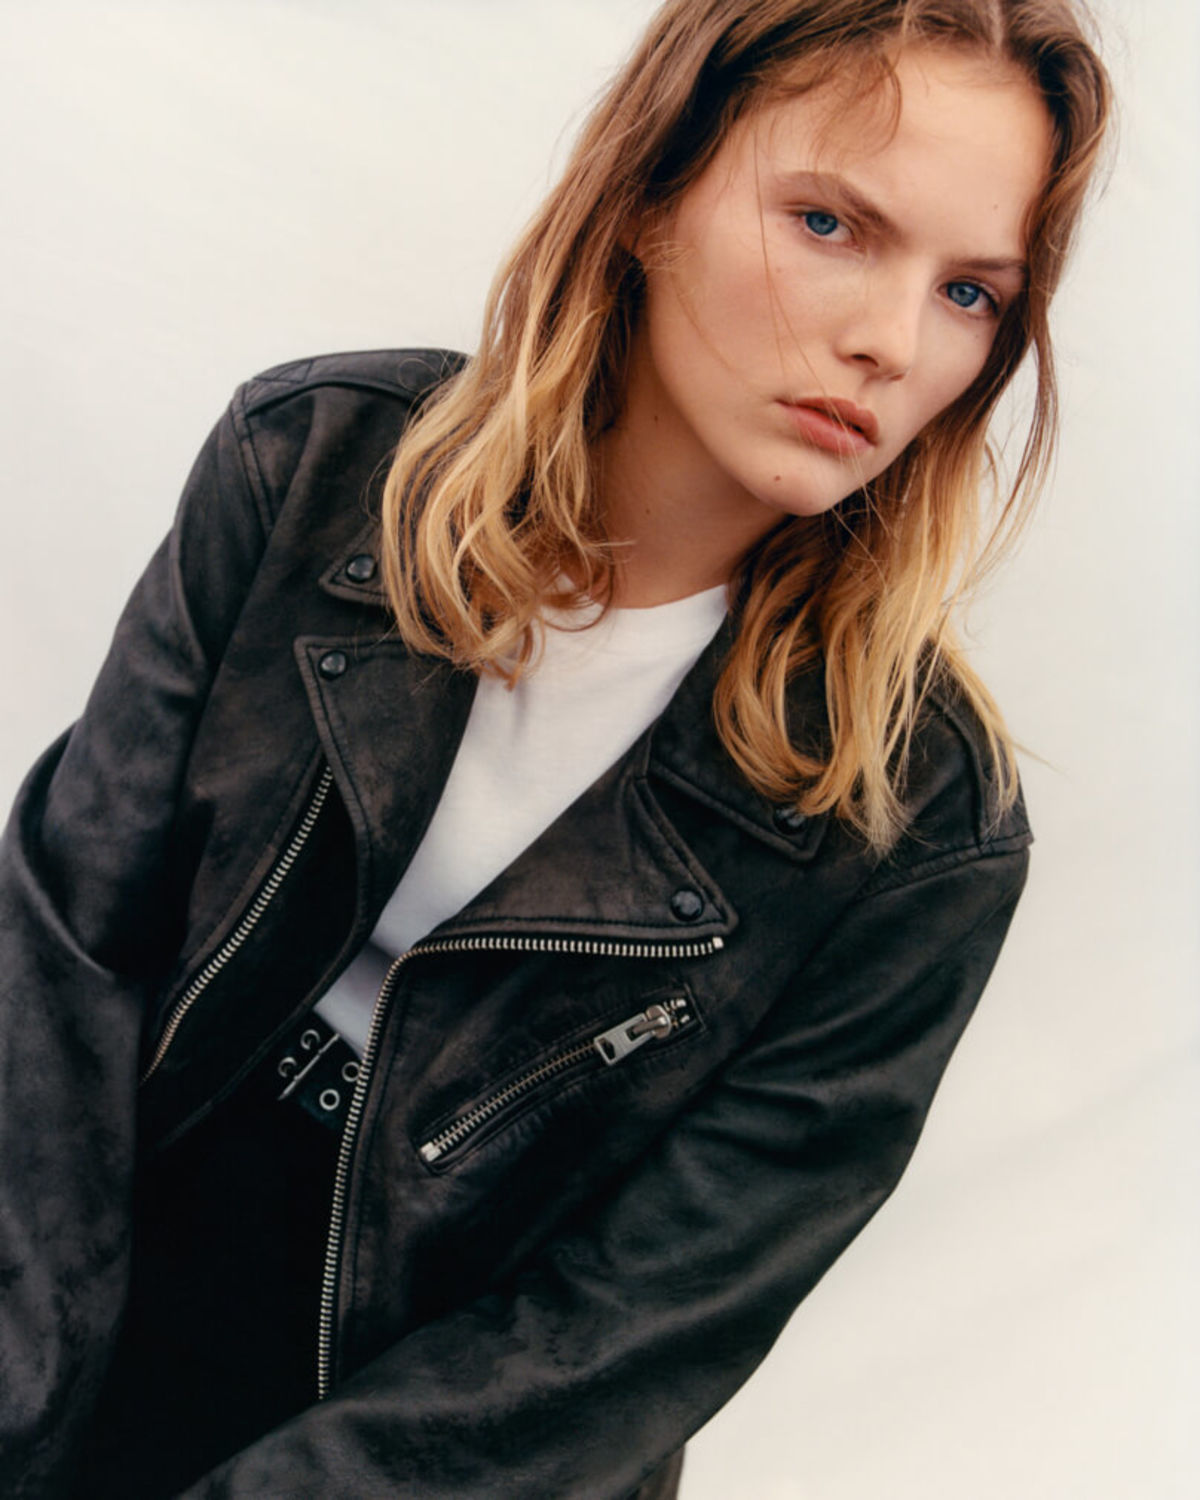 Portrait of a blonde woman wearing a black leather jacket over a white t-shirt.